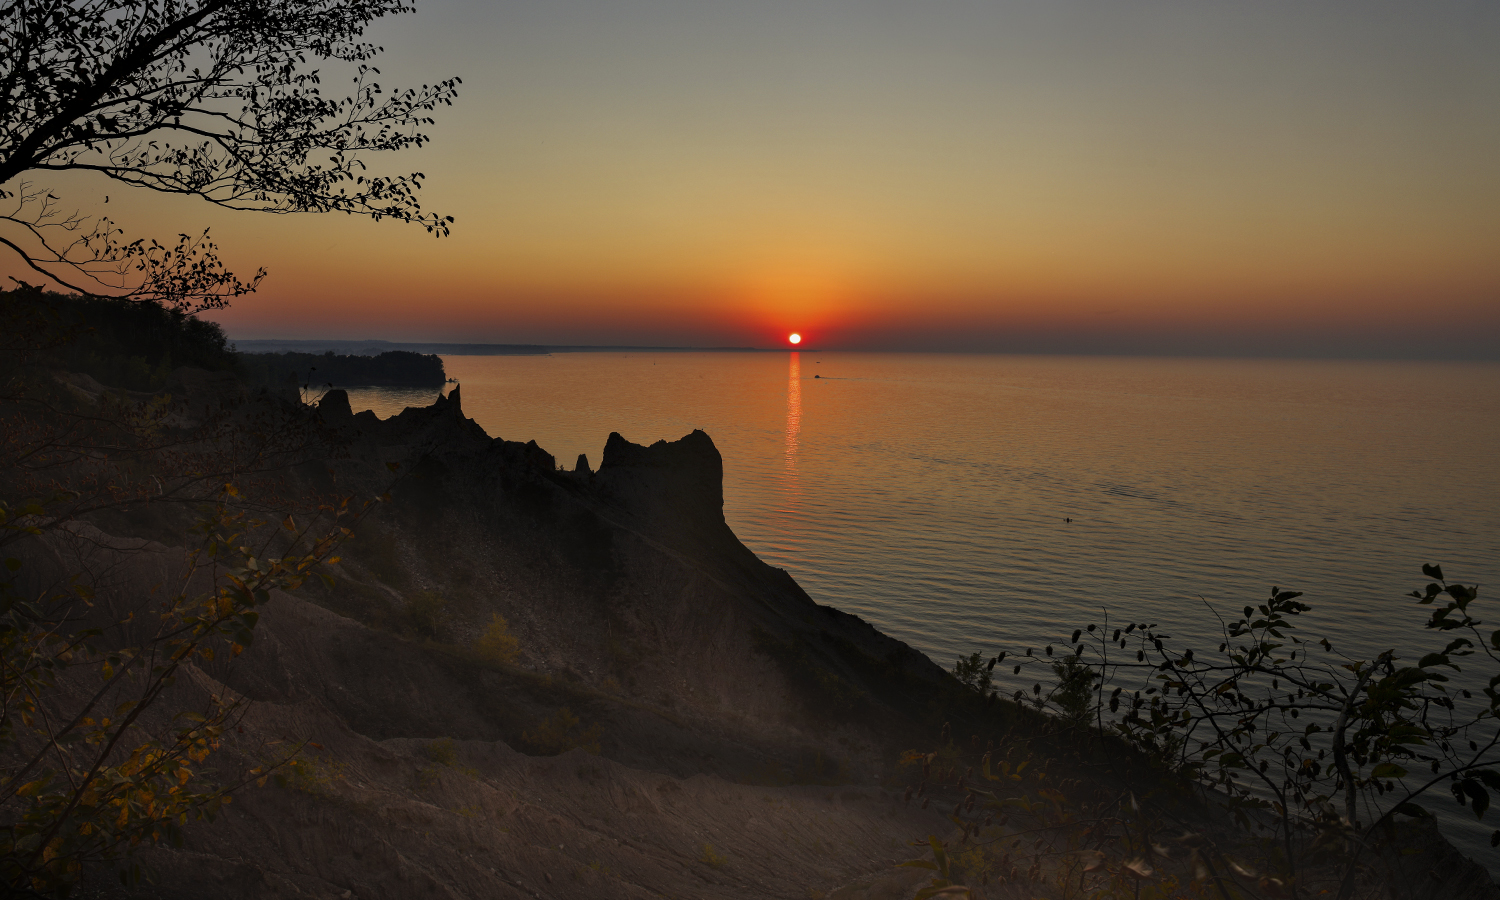 The sun sets over Lake Ontario at Chimney Bluffs State Park in Wolcott, N.Y.